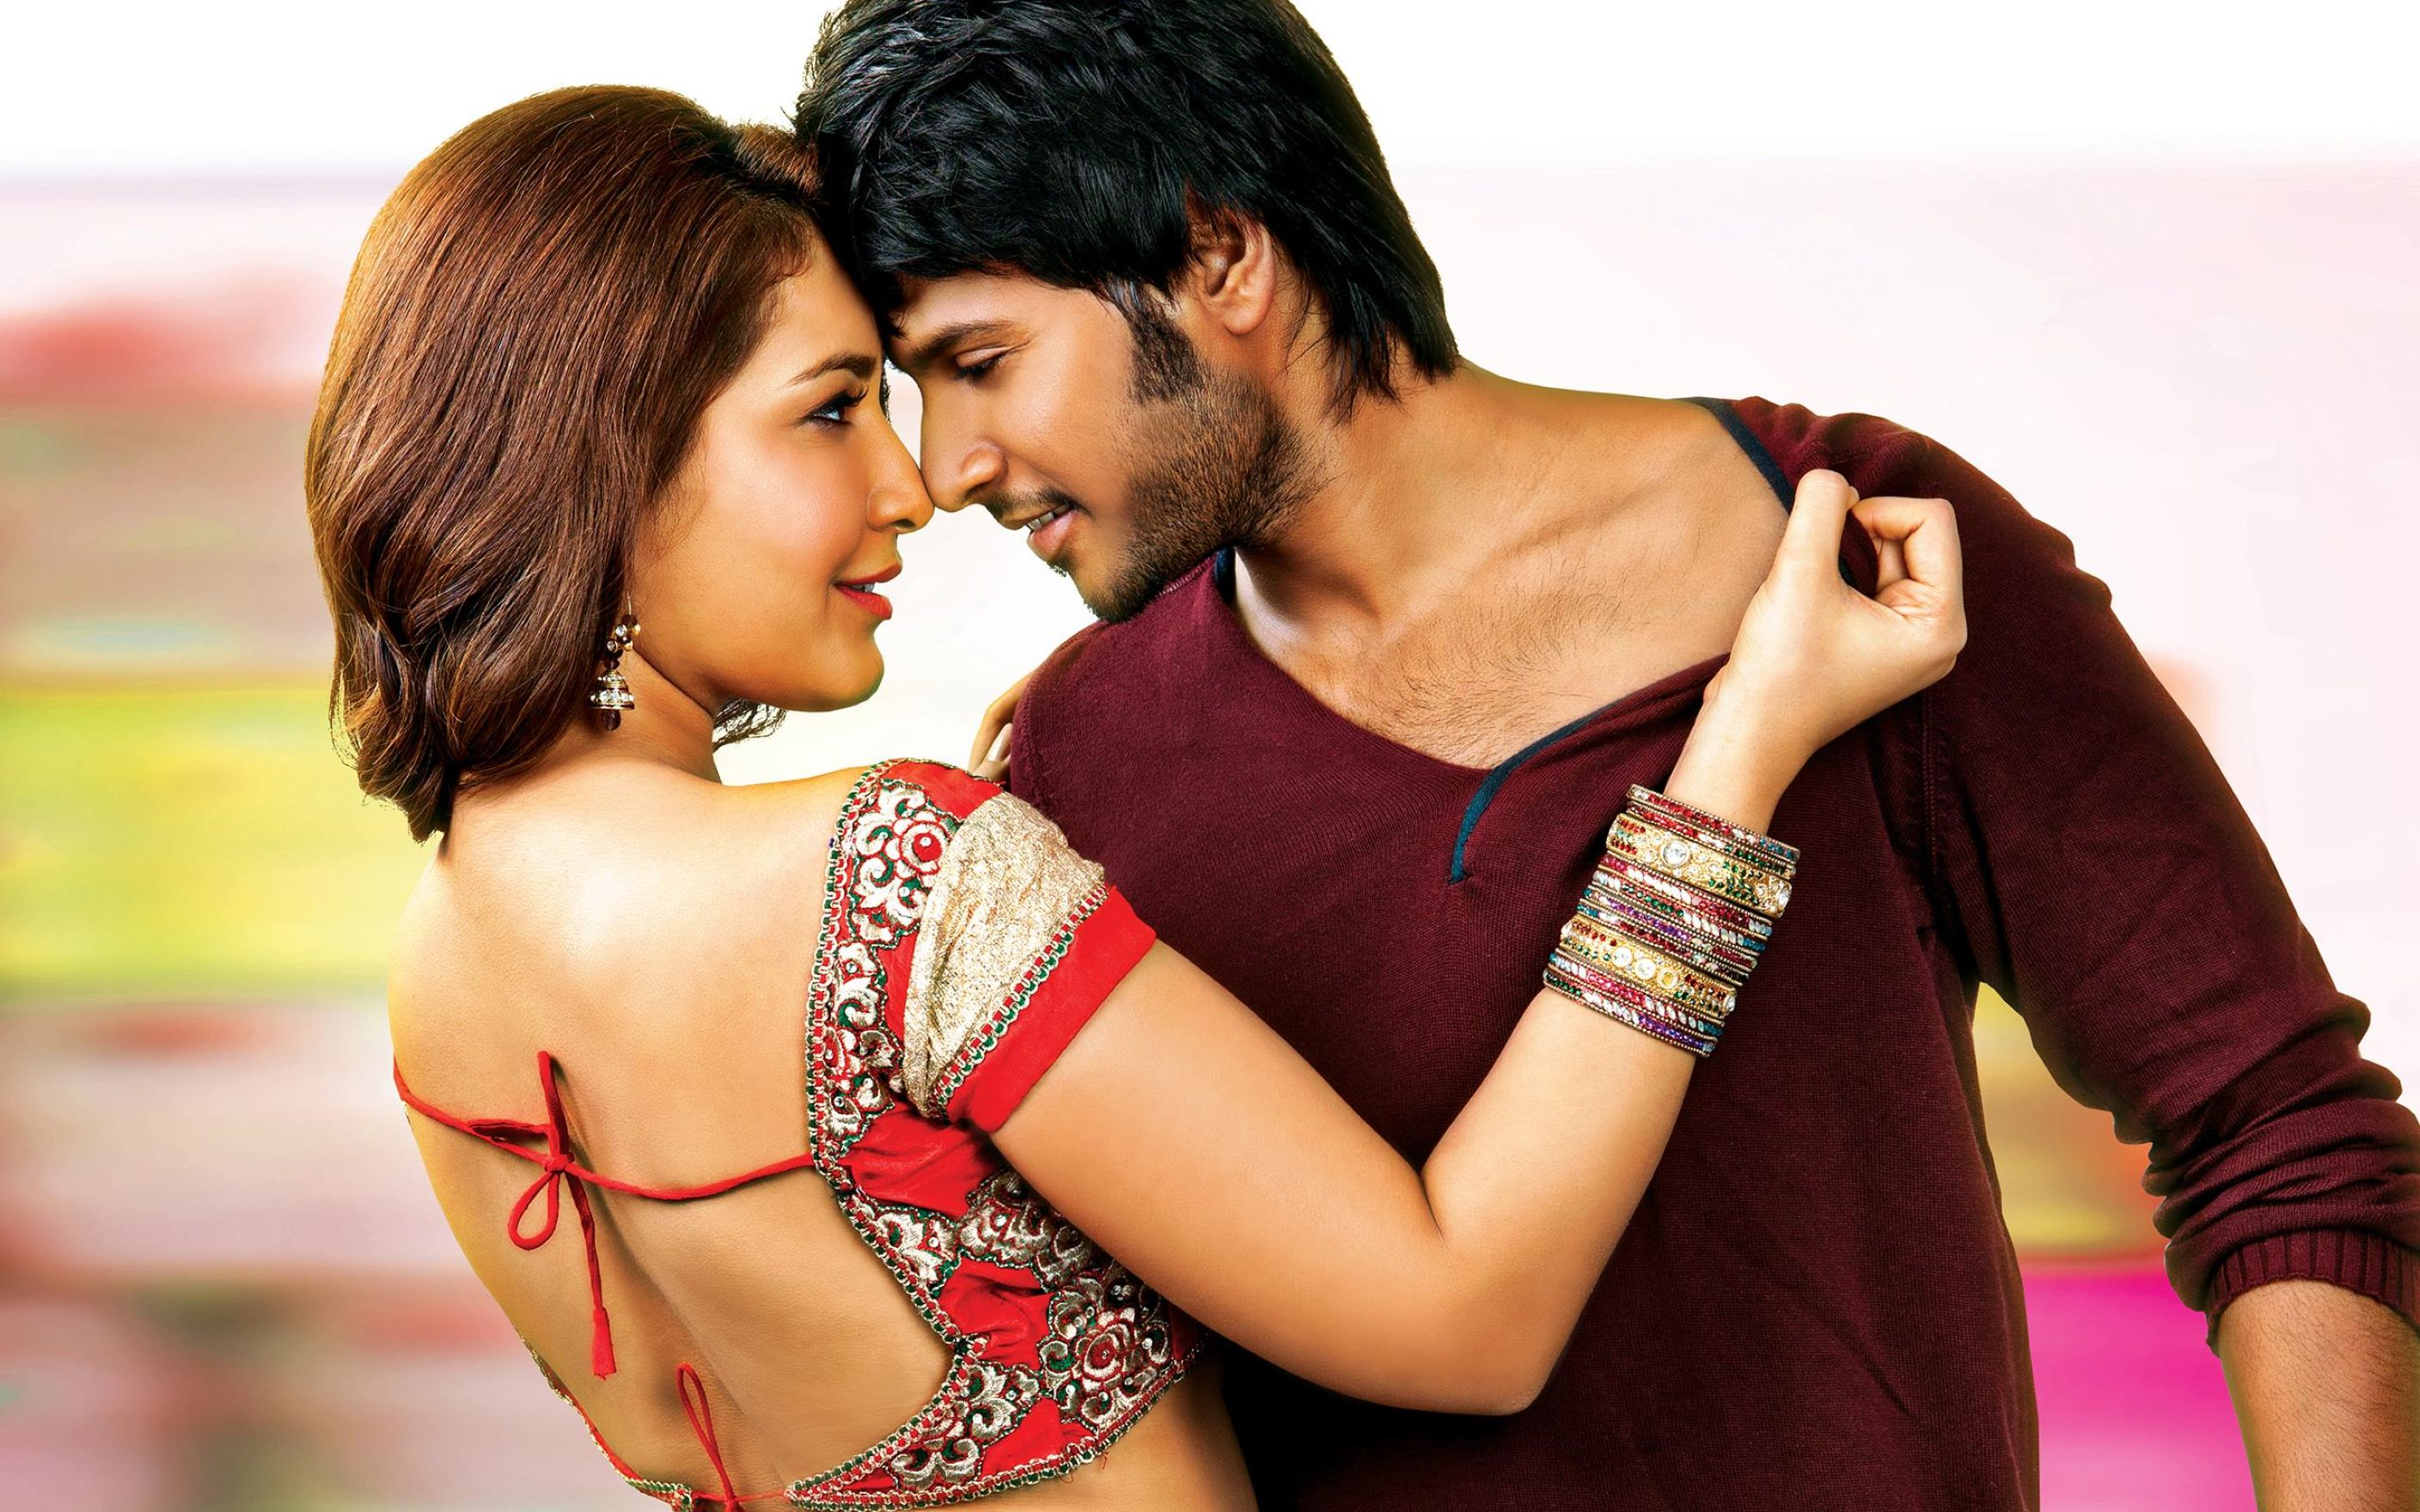 Download free HD Joru Rashi Khanna Sundeep Kishan Wallpaper, image